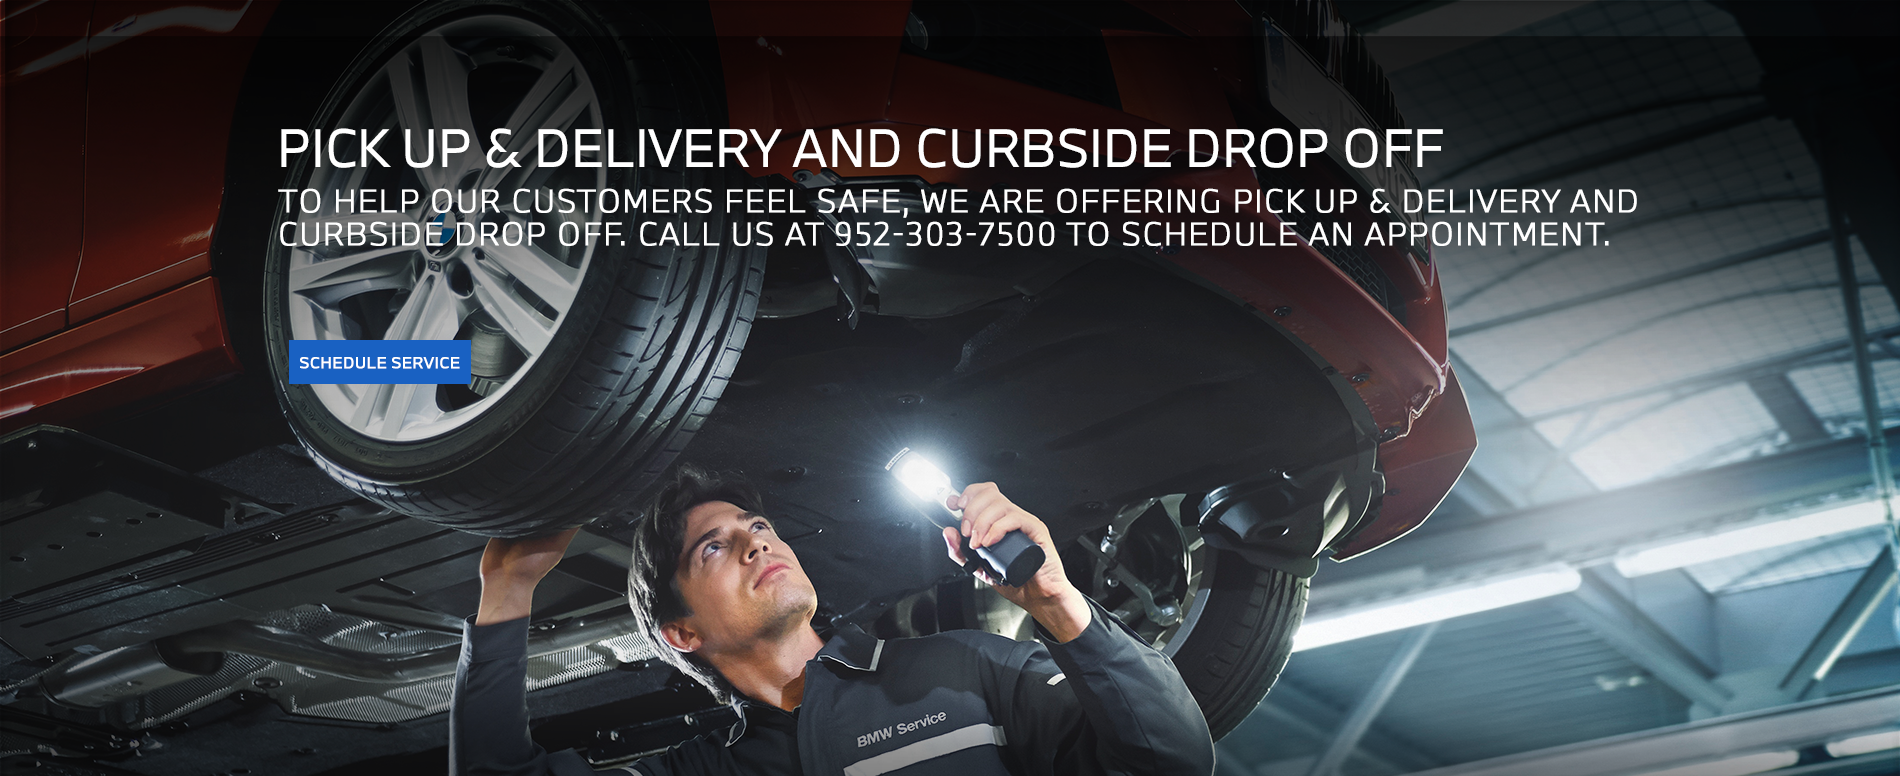 BMW of Minnetonka is offering Delivery or Curbside pick up and drop off